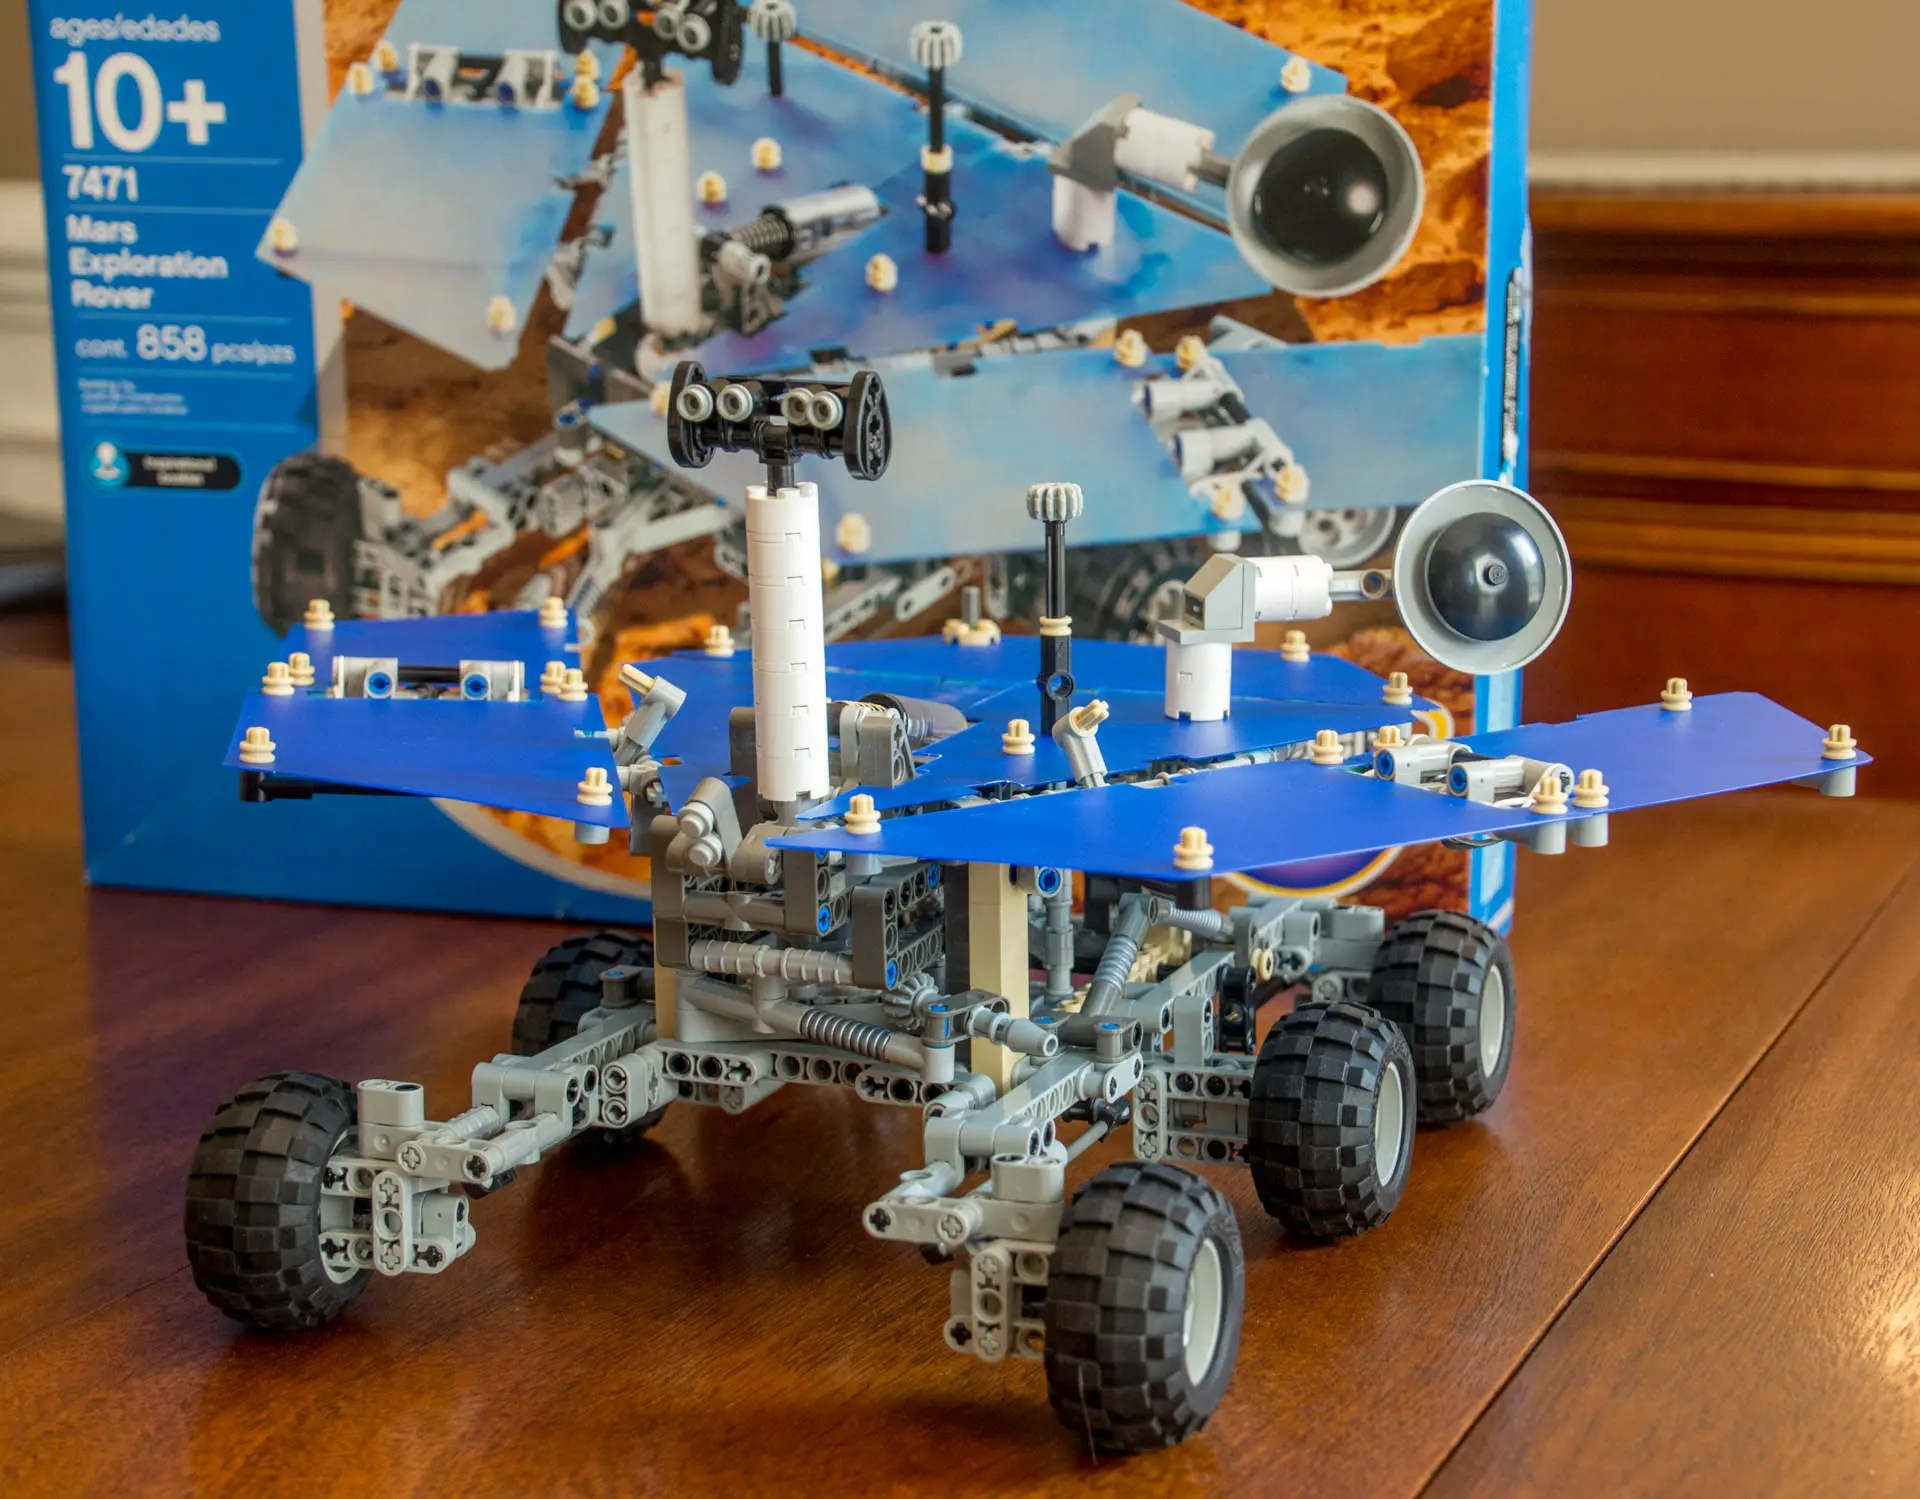 Mars Exploration Rover [7471] • 919RALEIGH